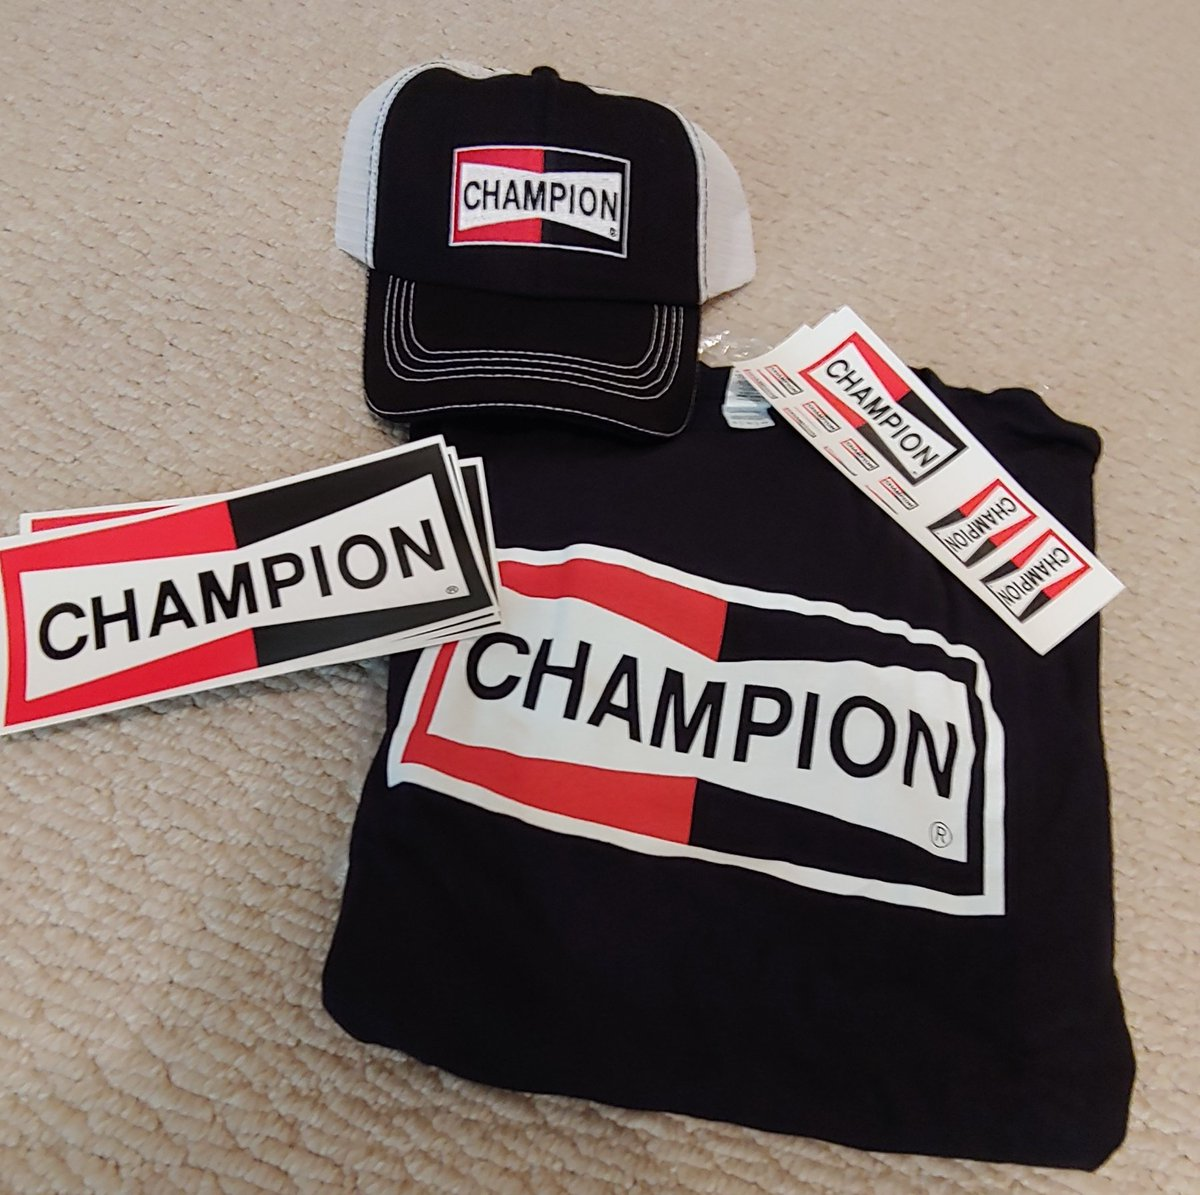 GIVEAWAY!! today's prize..a Champion hat, shirt and decals..how to win? 👇-FOLLOW OUR PAGE-LIKE THIS POST-TAG (1) FRIEND IN THE COMMENTS.one winner chosen from eligible entries tomorrow, Wednesday June 19th 5pm. Good Luck!